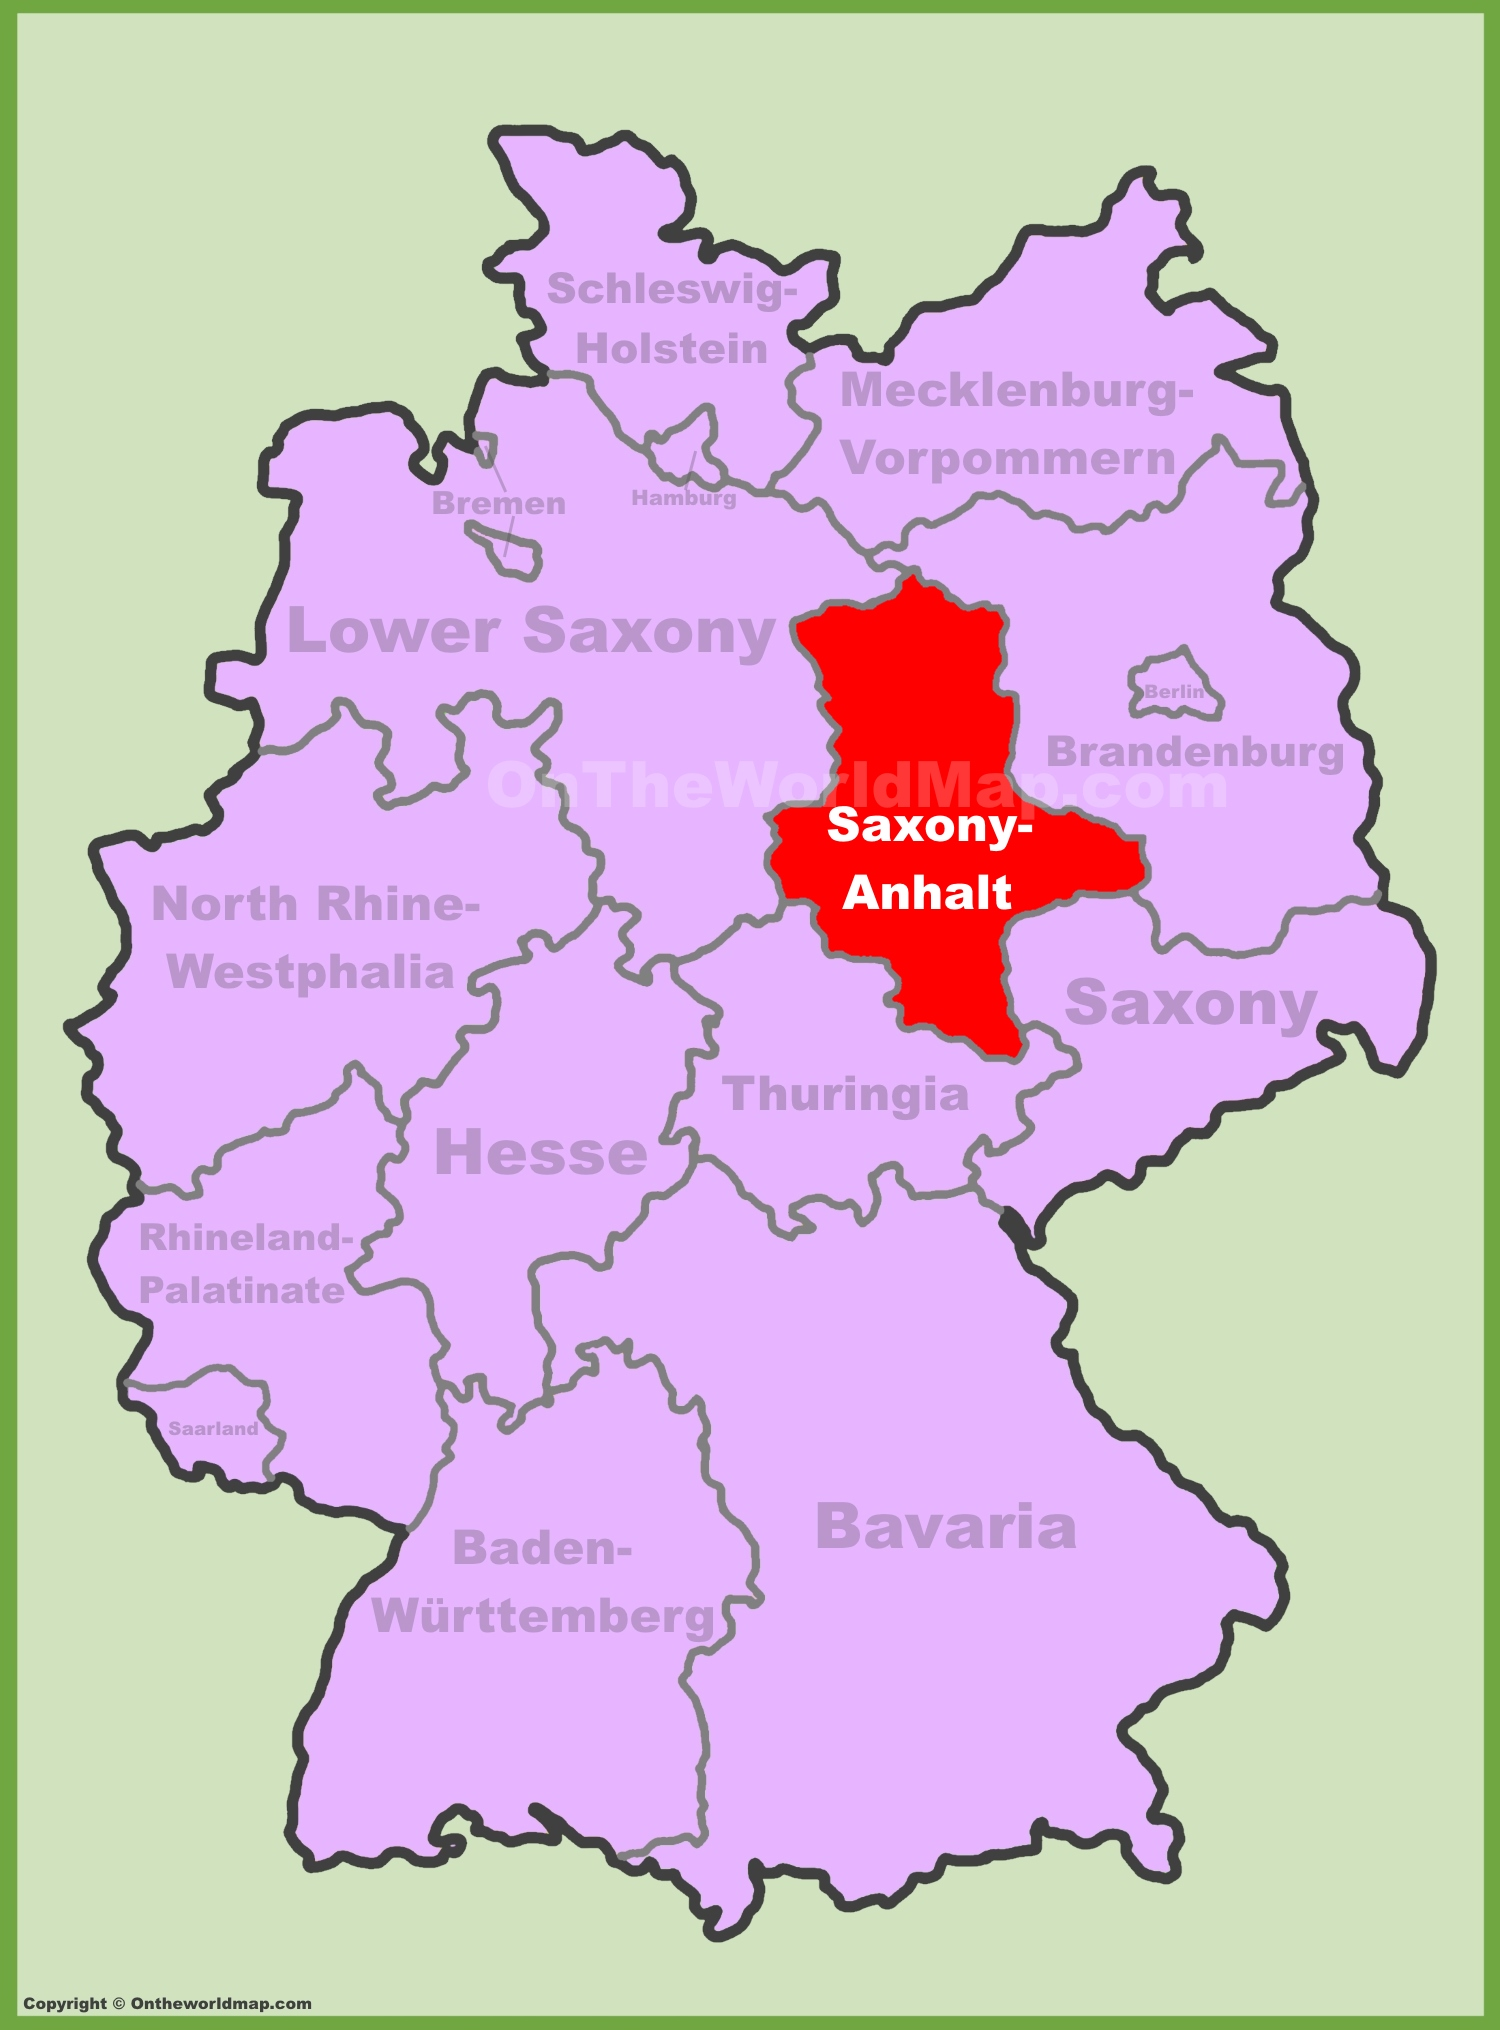 Verrätergasse Saxony, Saxony-Anhalt and Thuringia, Saxony-Anhalt location on the Germany map